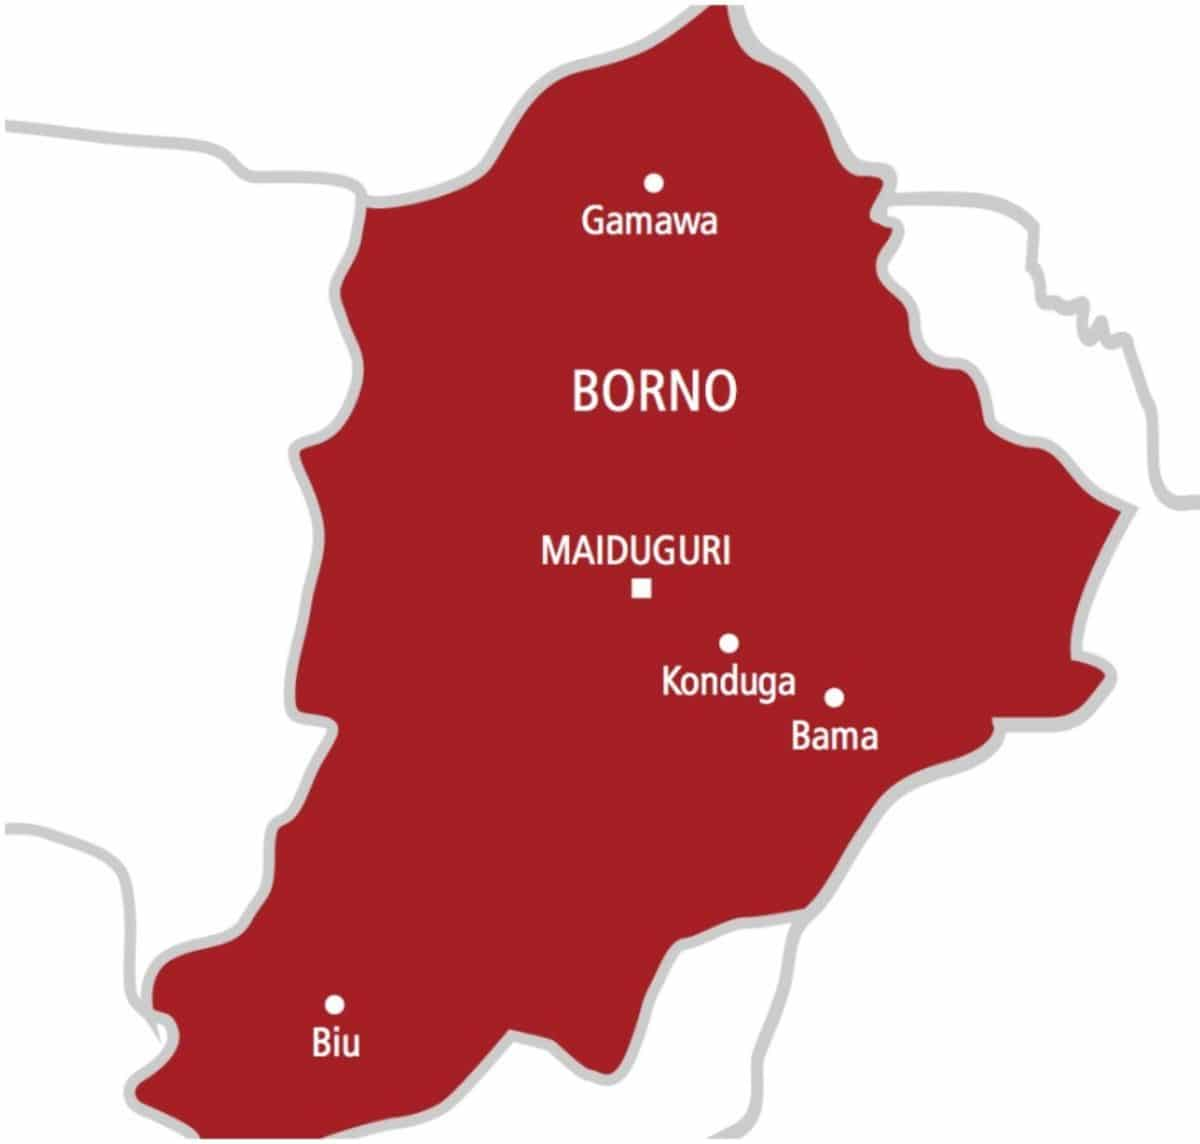 Borno rice farmers, governors